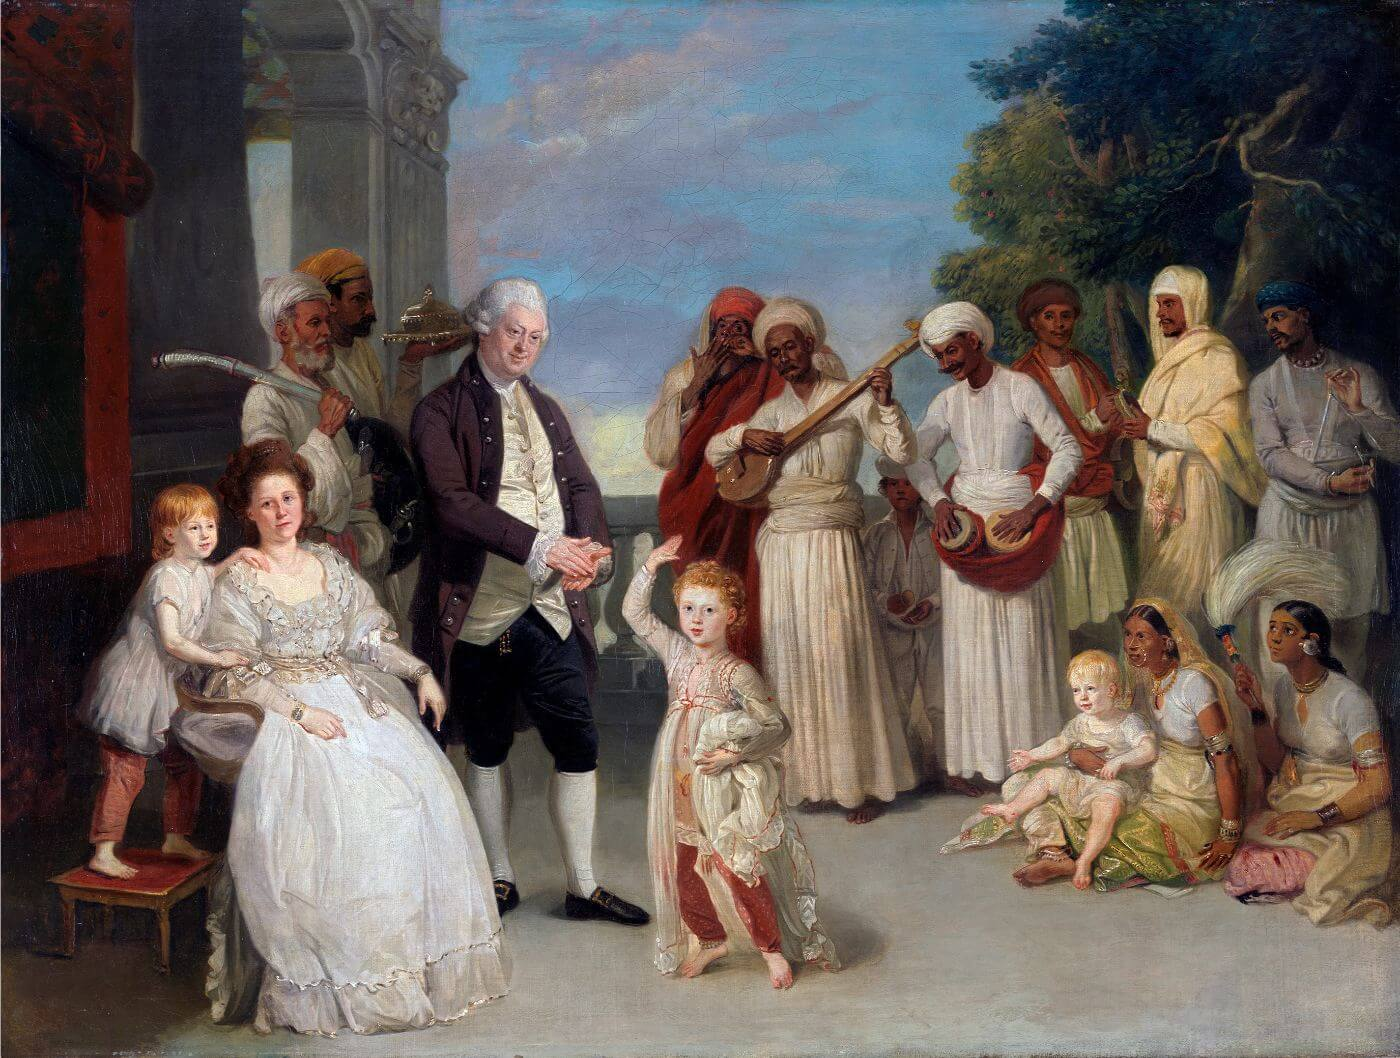 Group Portrait of Sir Elijah and Lady Impey - Lucknow - Johan Zoffany - c 1785 Vintage Orientalist Paintings of India